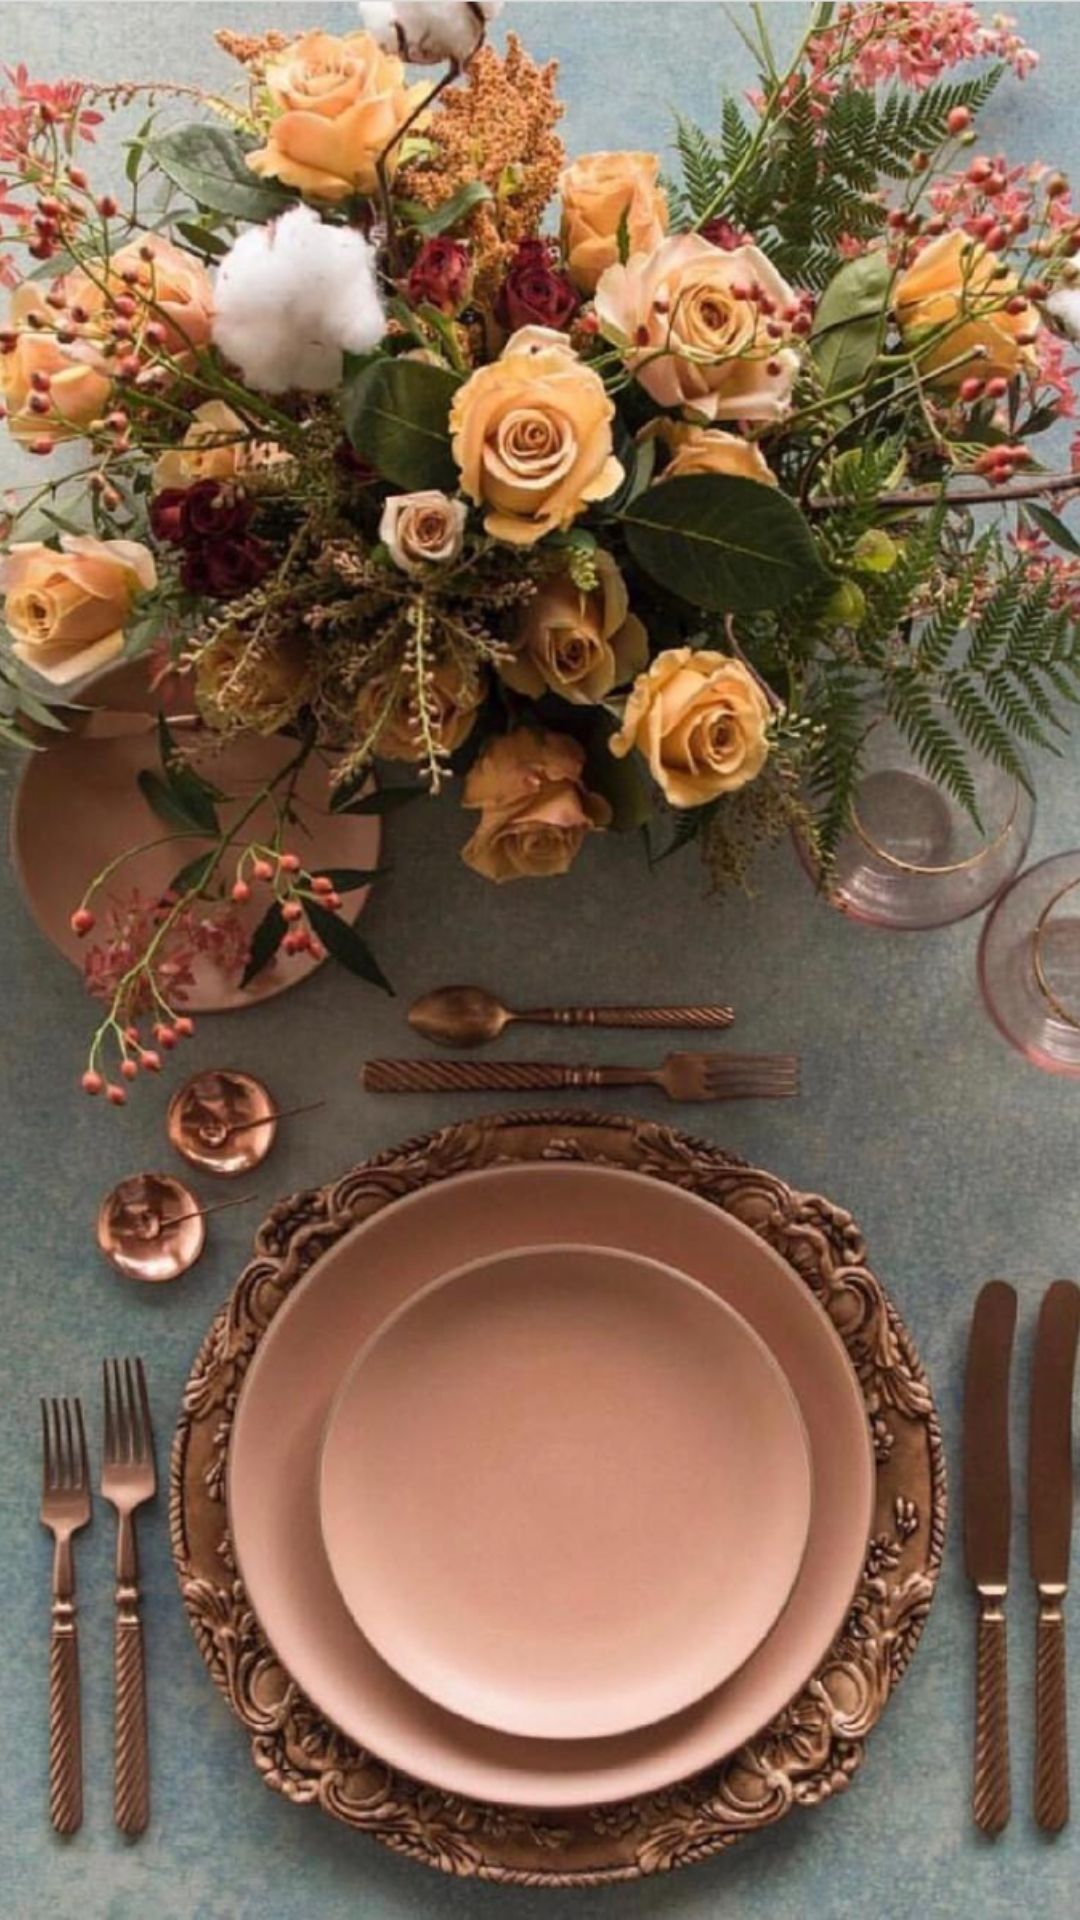 Creative Thanksgiving table setting and tablescape ideas 2021